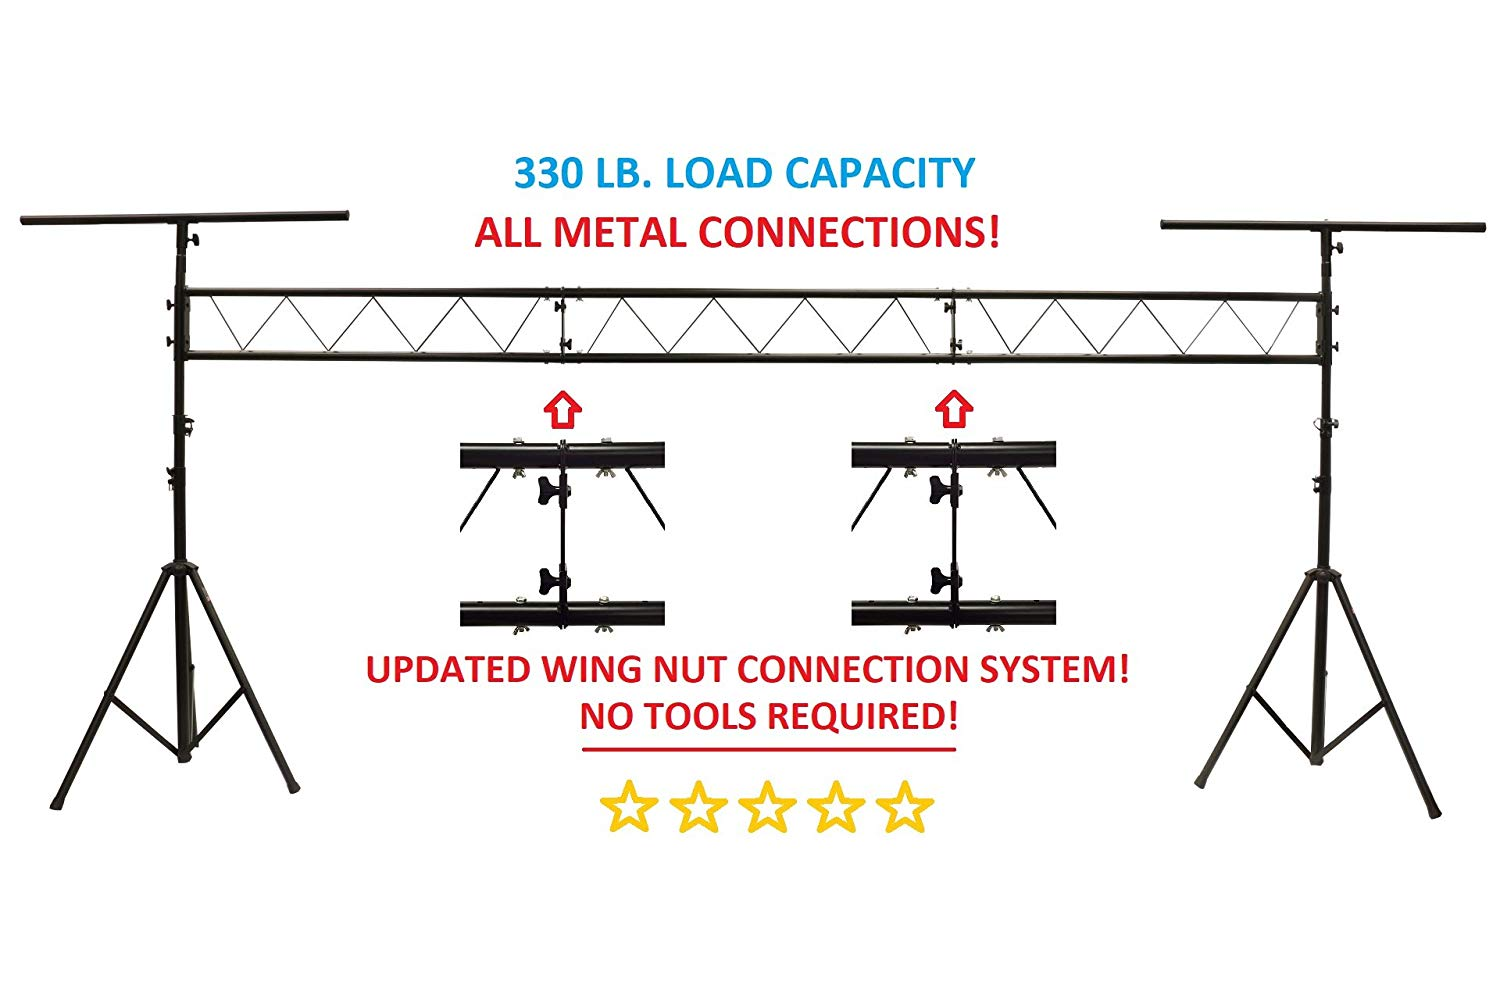 Dj Lighting Diagram Electrical Wiring Diagrams 5a Cedarslink 15ft Portable Truss Stand W T Bar Trussing Animated Lights Source